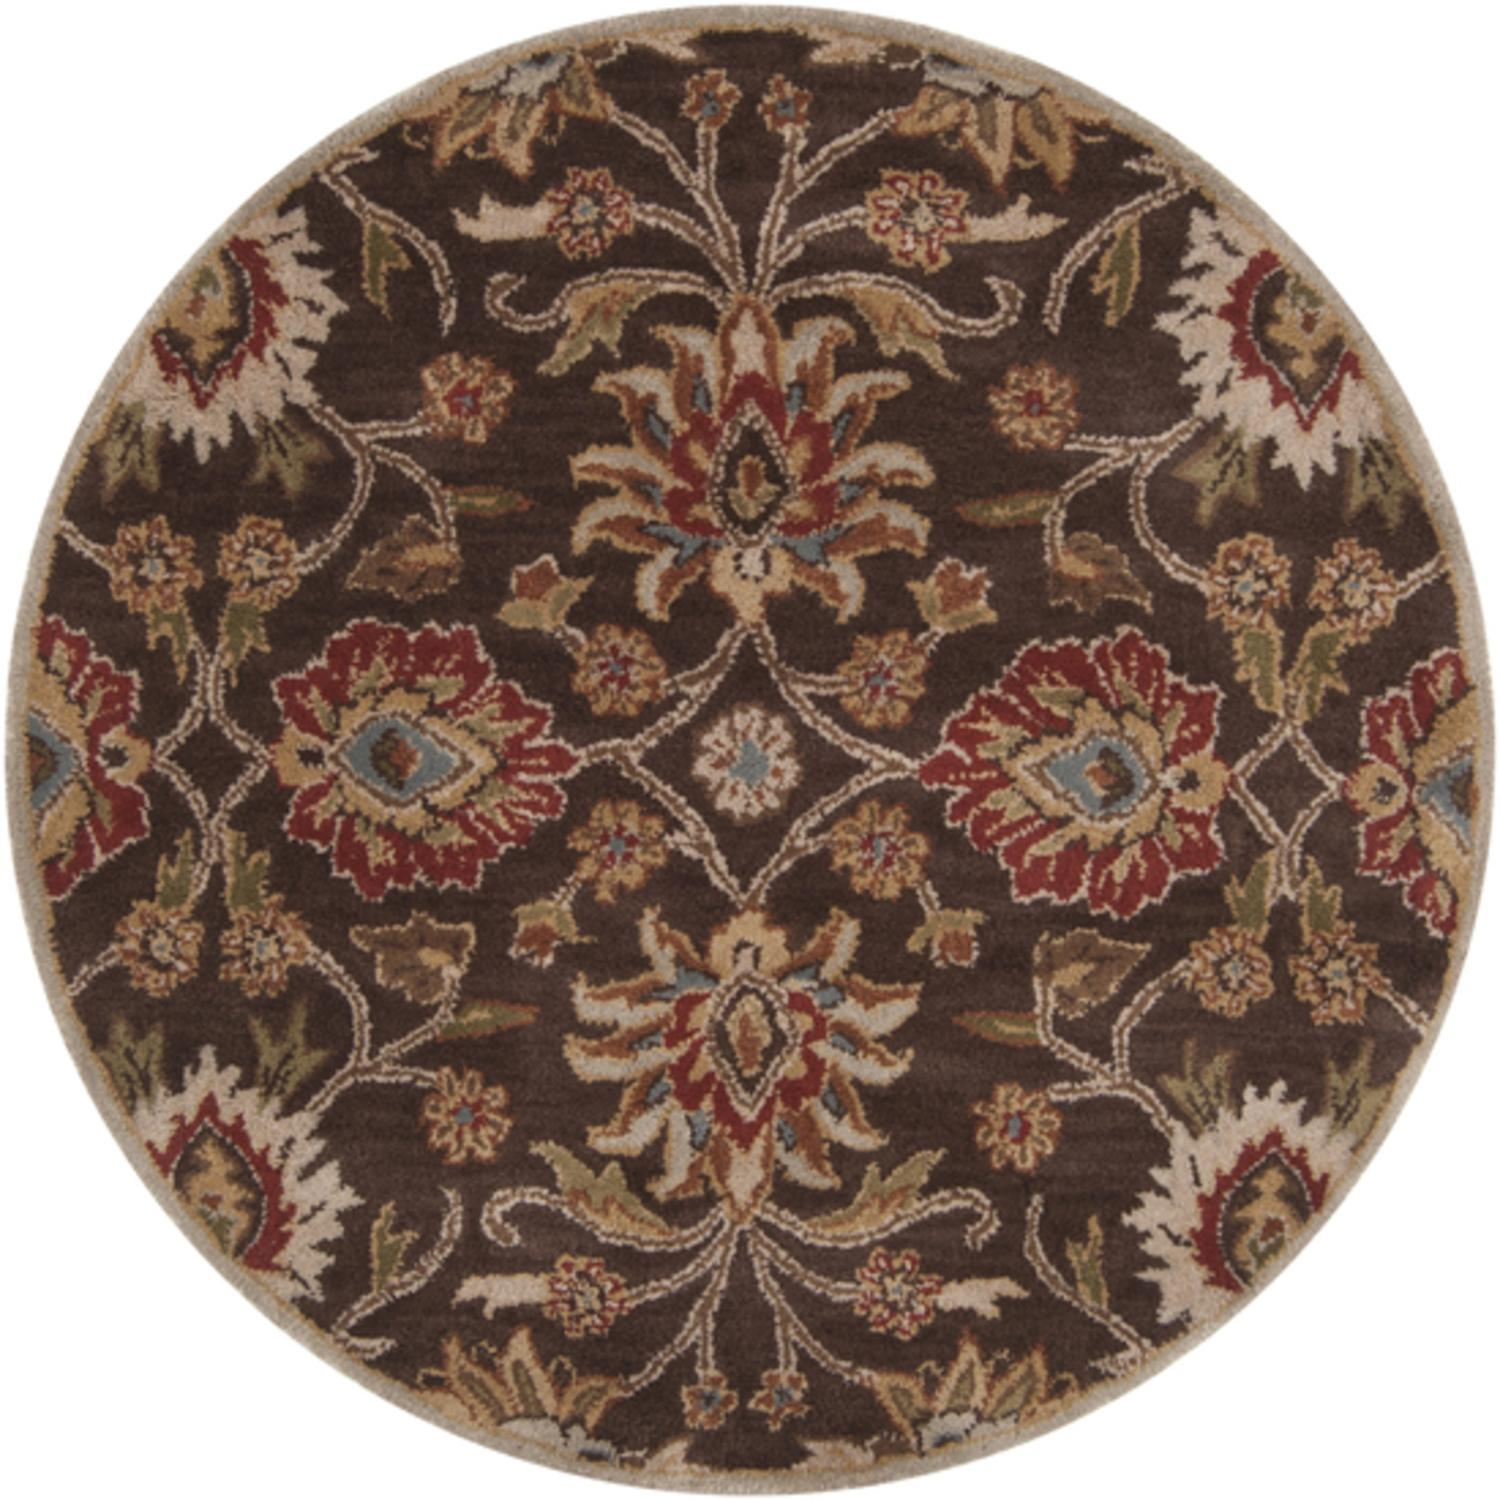 4' Octavia Khaki Green and Russet Brown Hand Tufted Round Wool Area Throw Rug